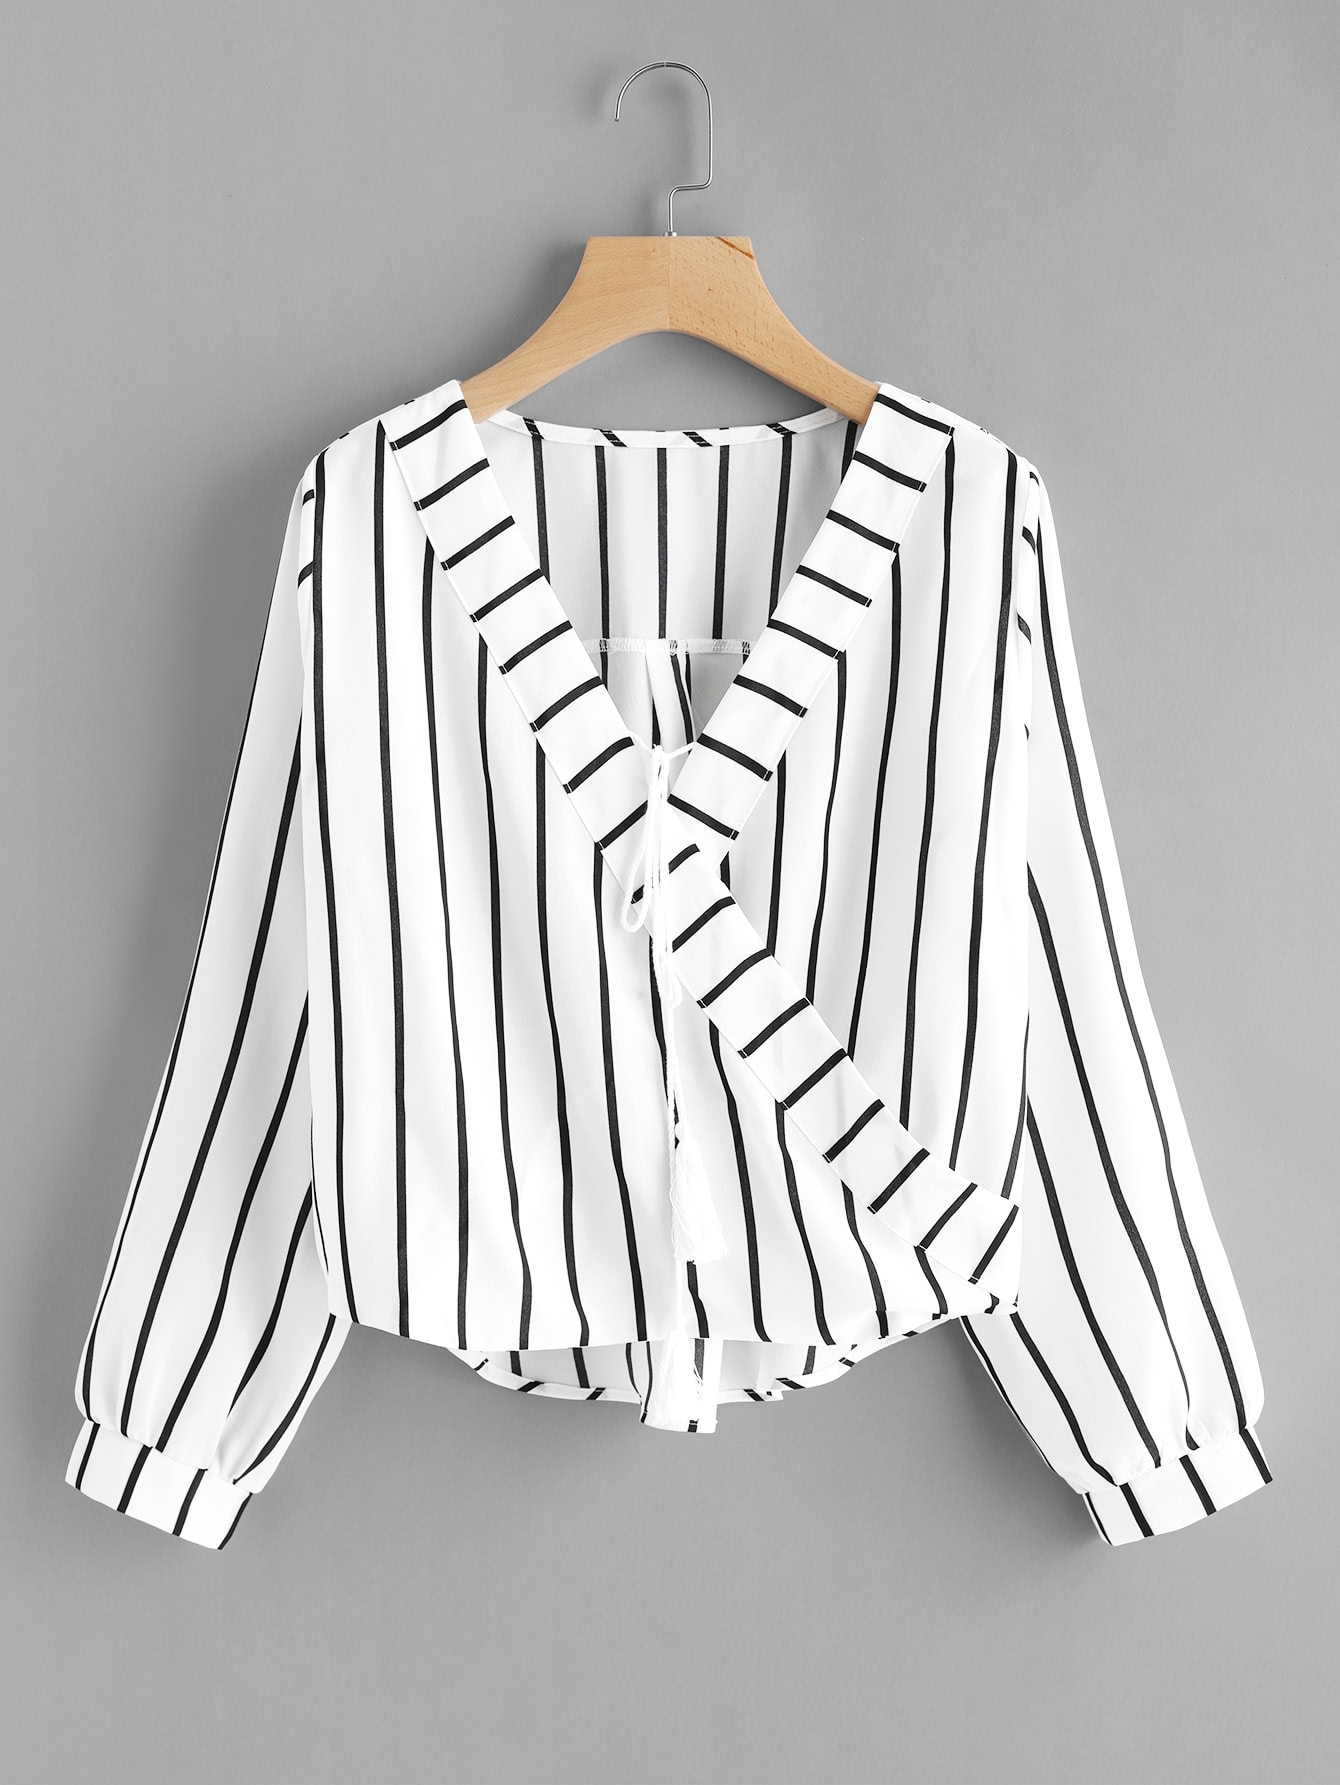 Contrast Striped Surplice Neckline Tassel Tie Blouse tassel tie striped blouse